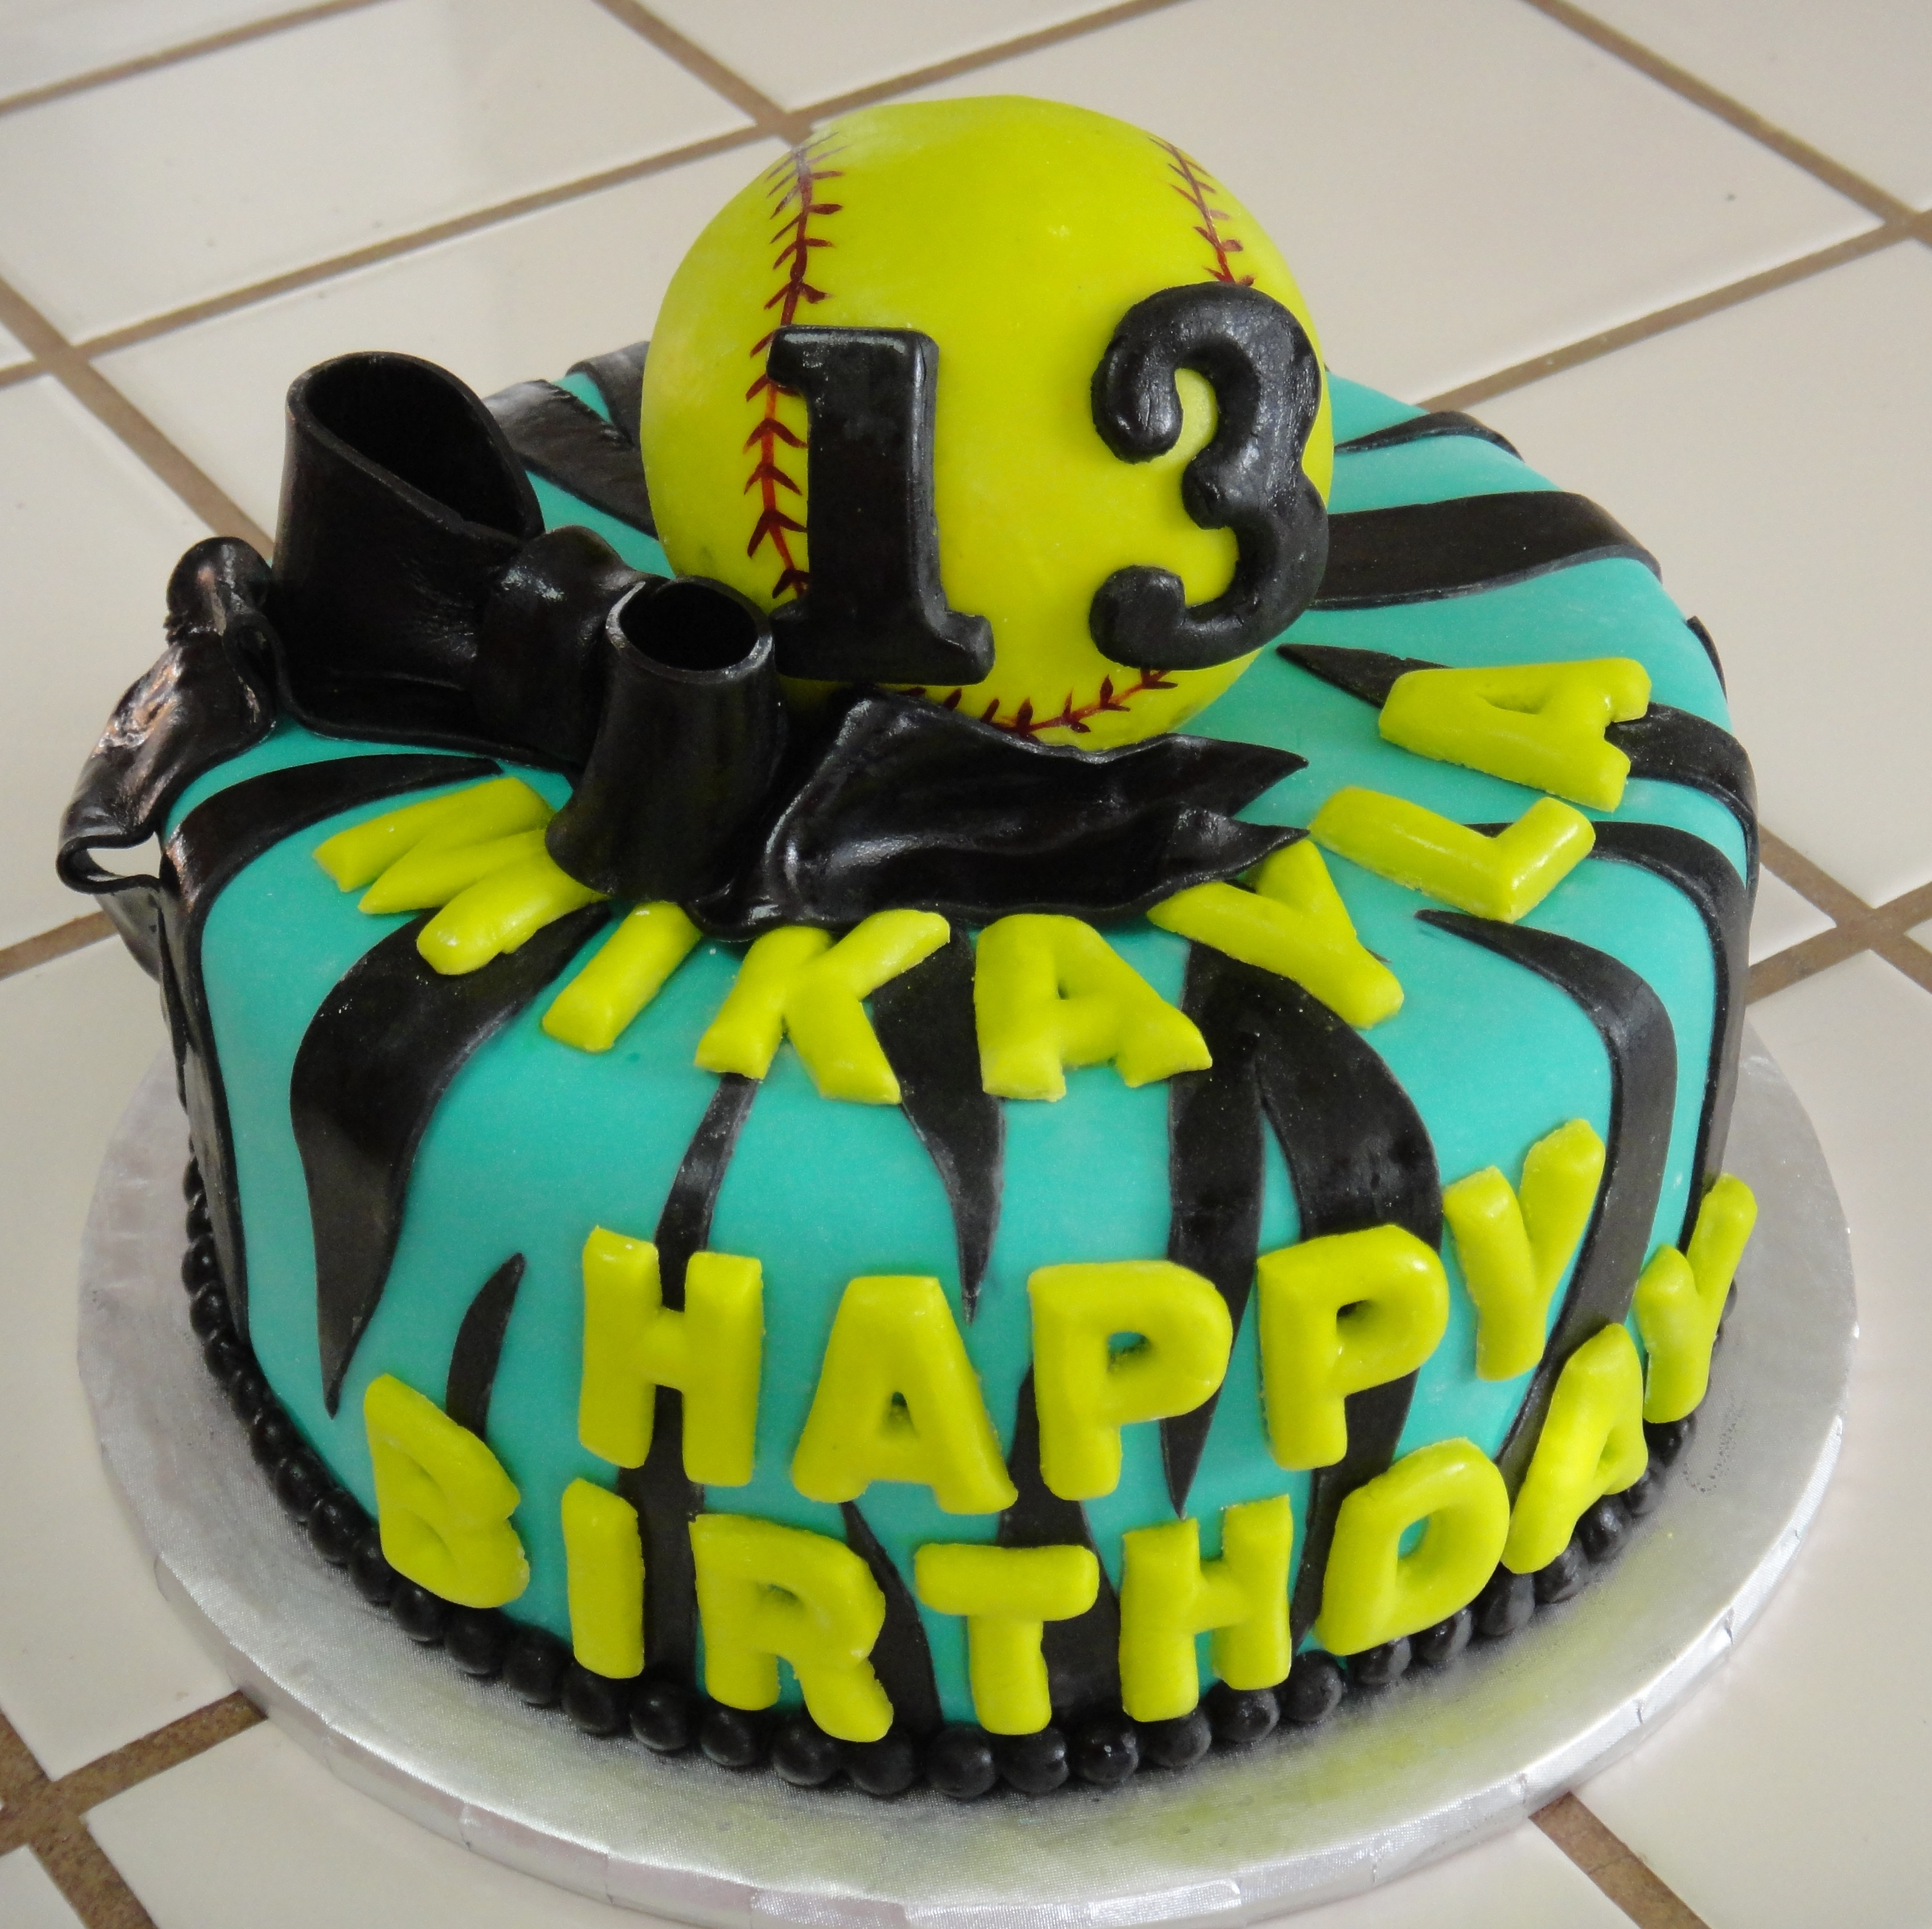 Best ideas about Softball Birthday Cake . Save or Pin Girls Softball Cake Cake Ideas and Designs Now.